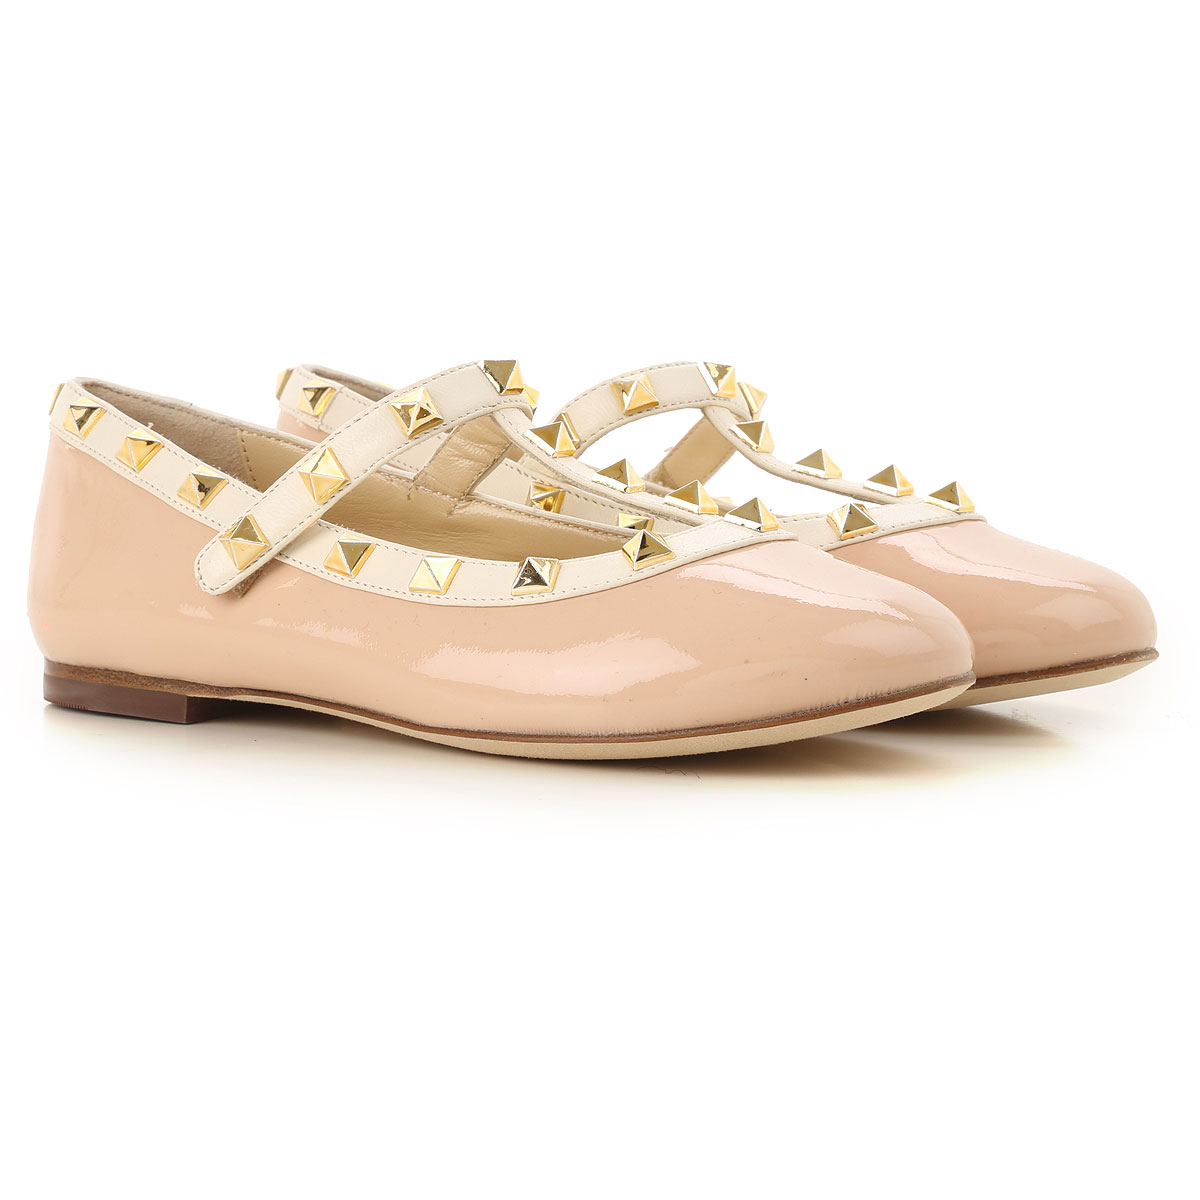 Image of Prosperine Kids Shoes for Girls, Dusty Blush, Leather, 2017, 24 25 26 27 28 29 30 31 32 33 34 35